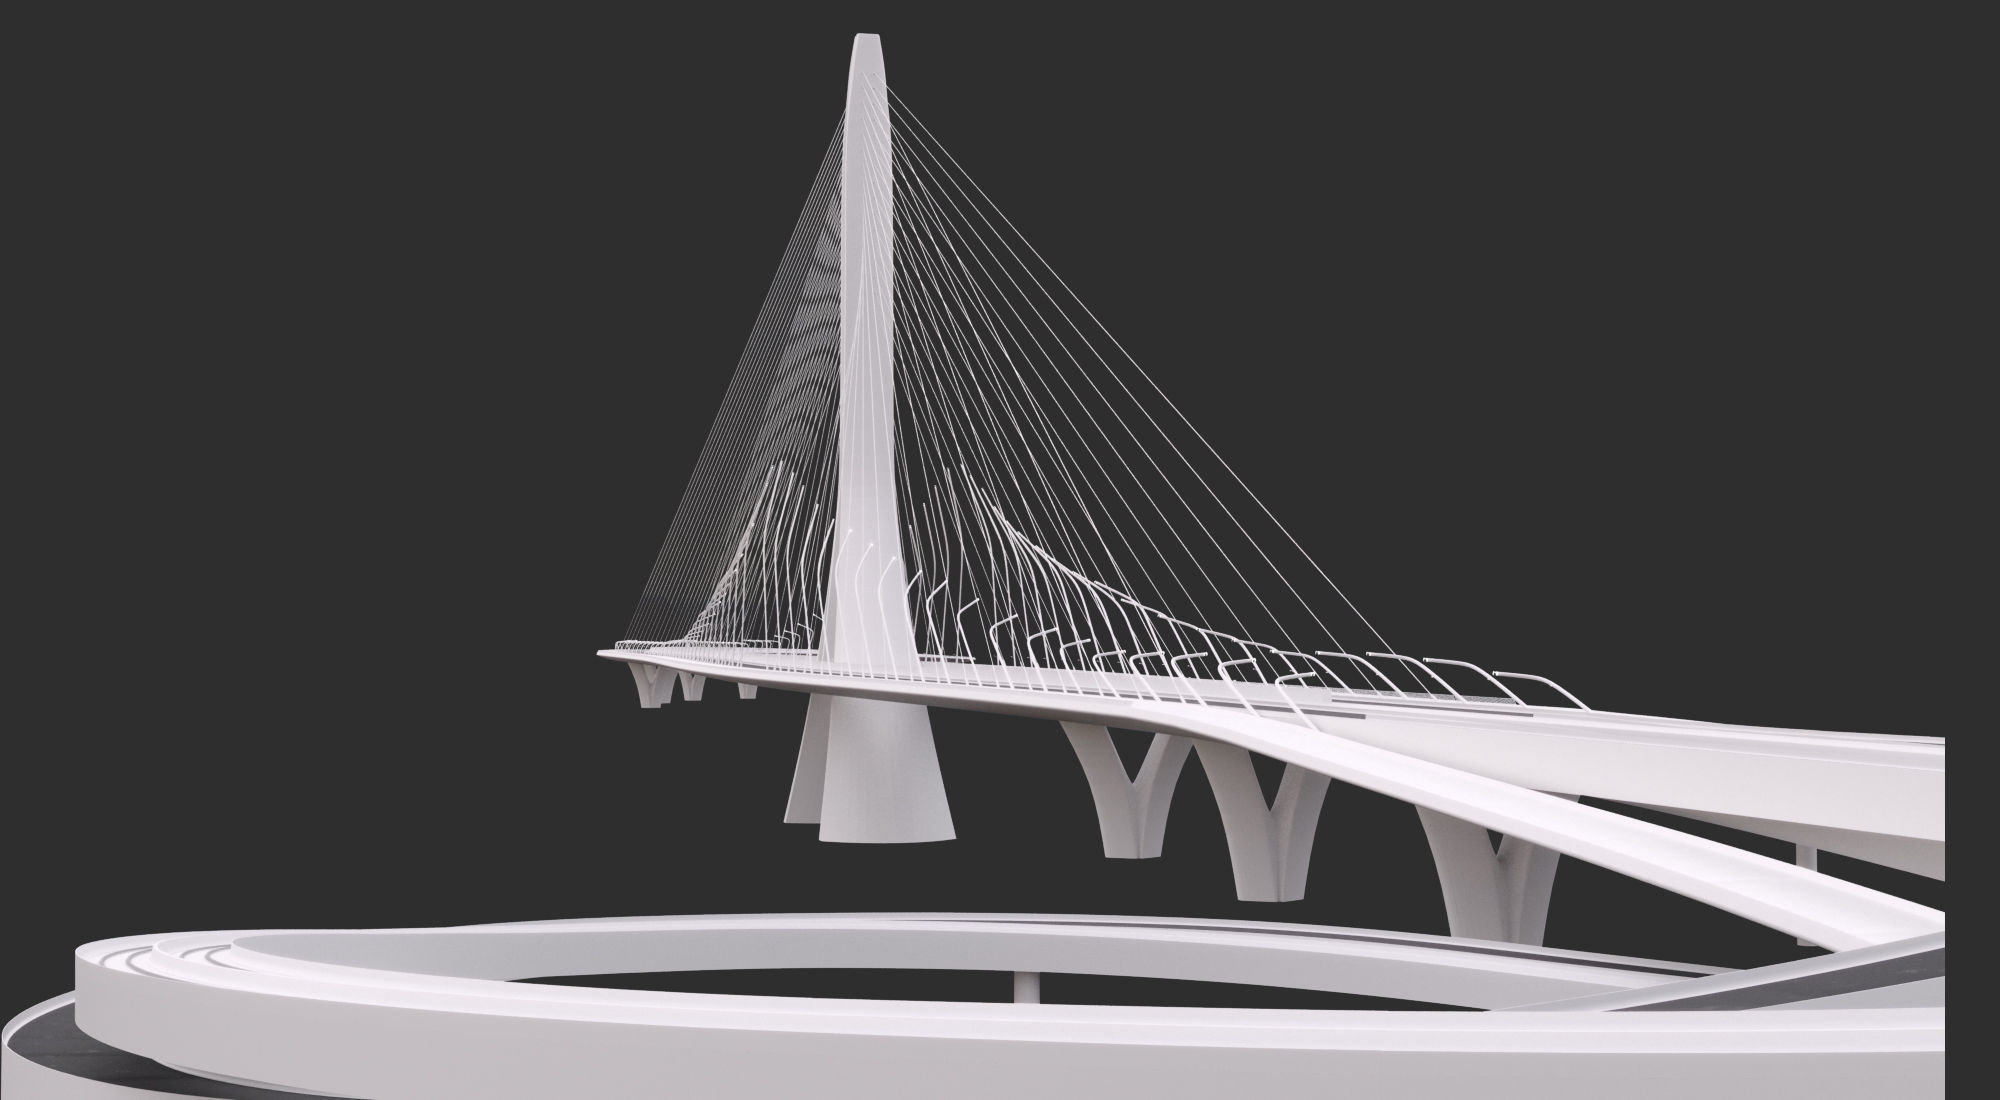 Zaha Hadid Architects Danjiang Bridge in Taiwan